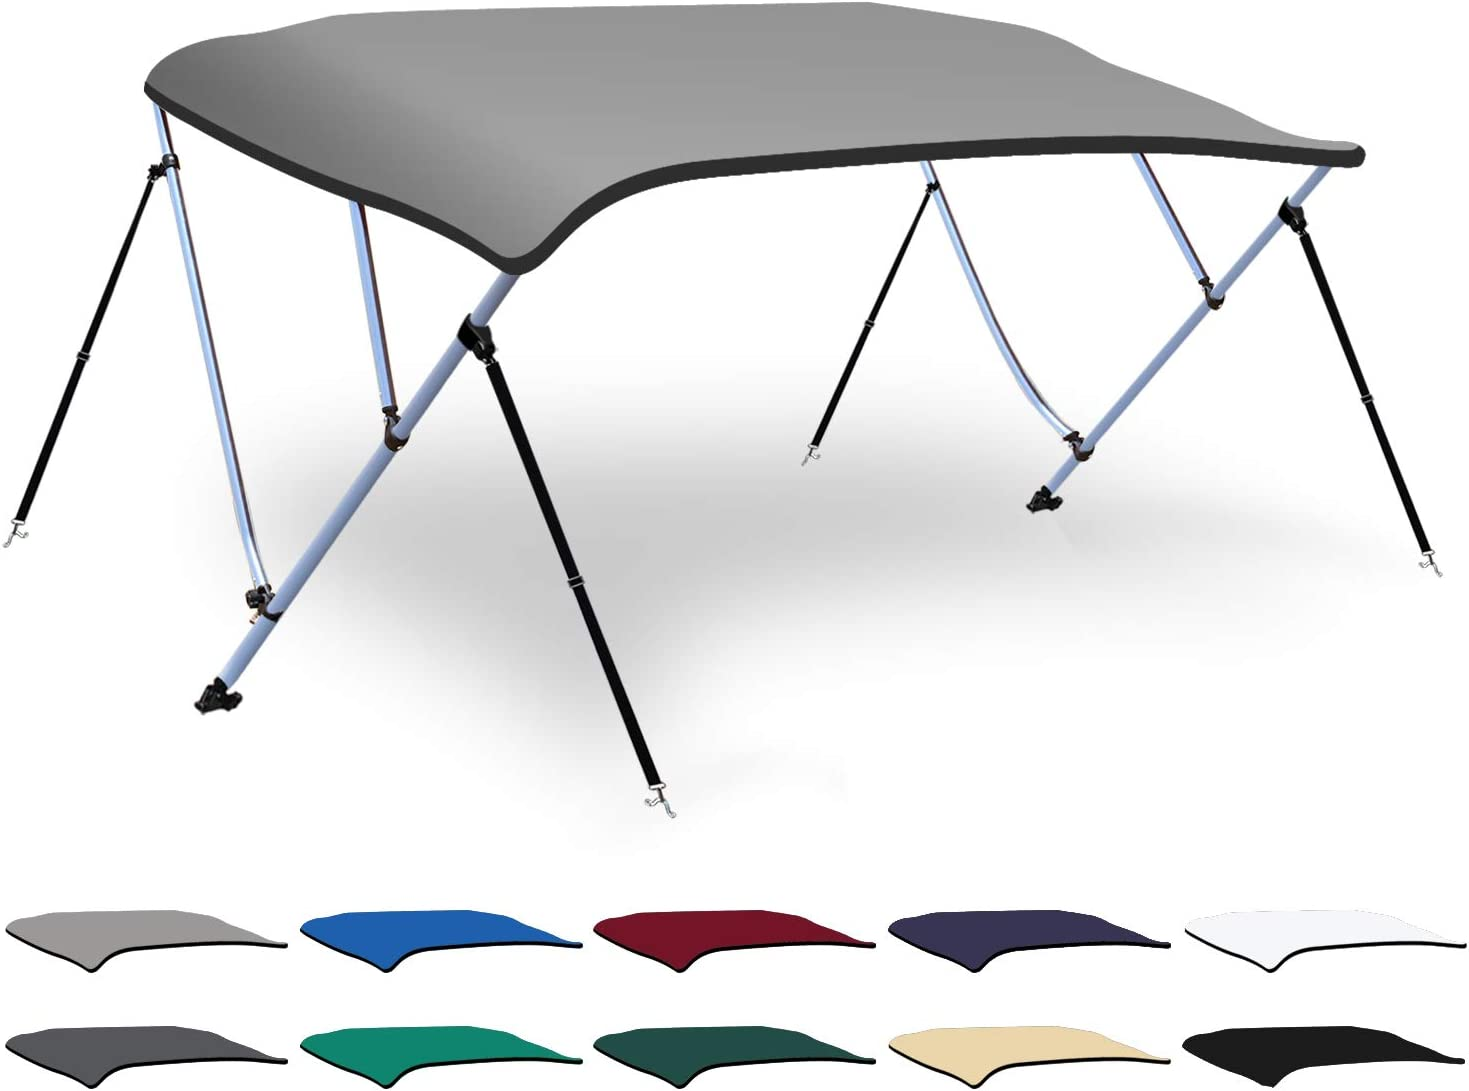 XGEAR 3-4 Bow Super Special SALE held Bimini Top Boat Cover Denver Mall 4 Mounting Hard with Straps